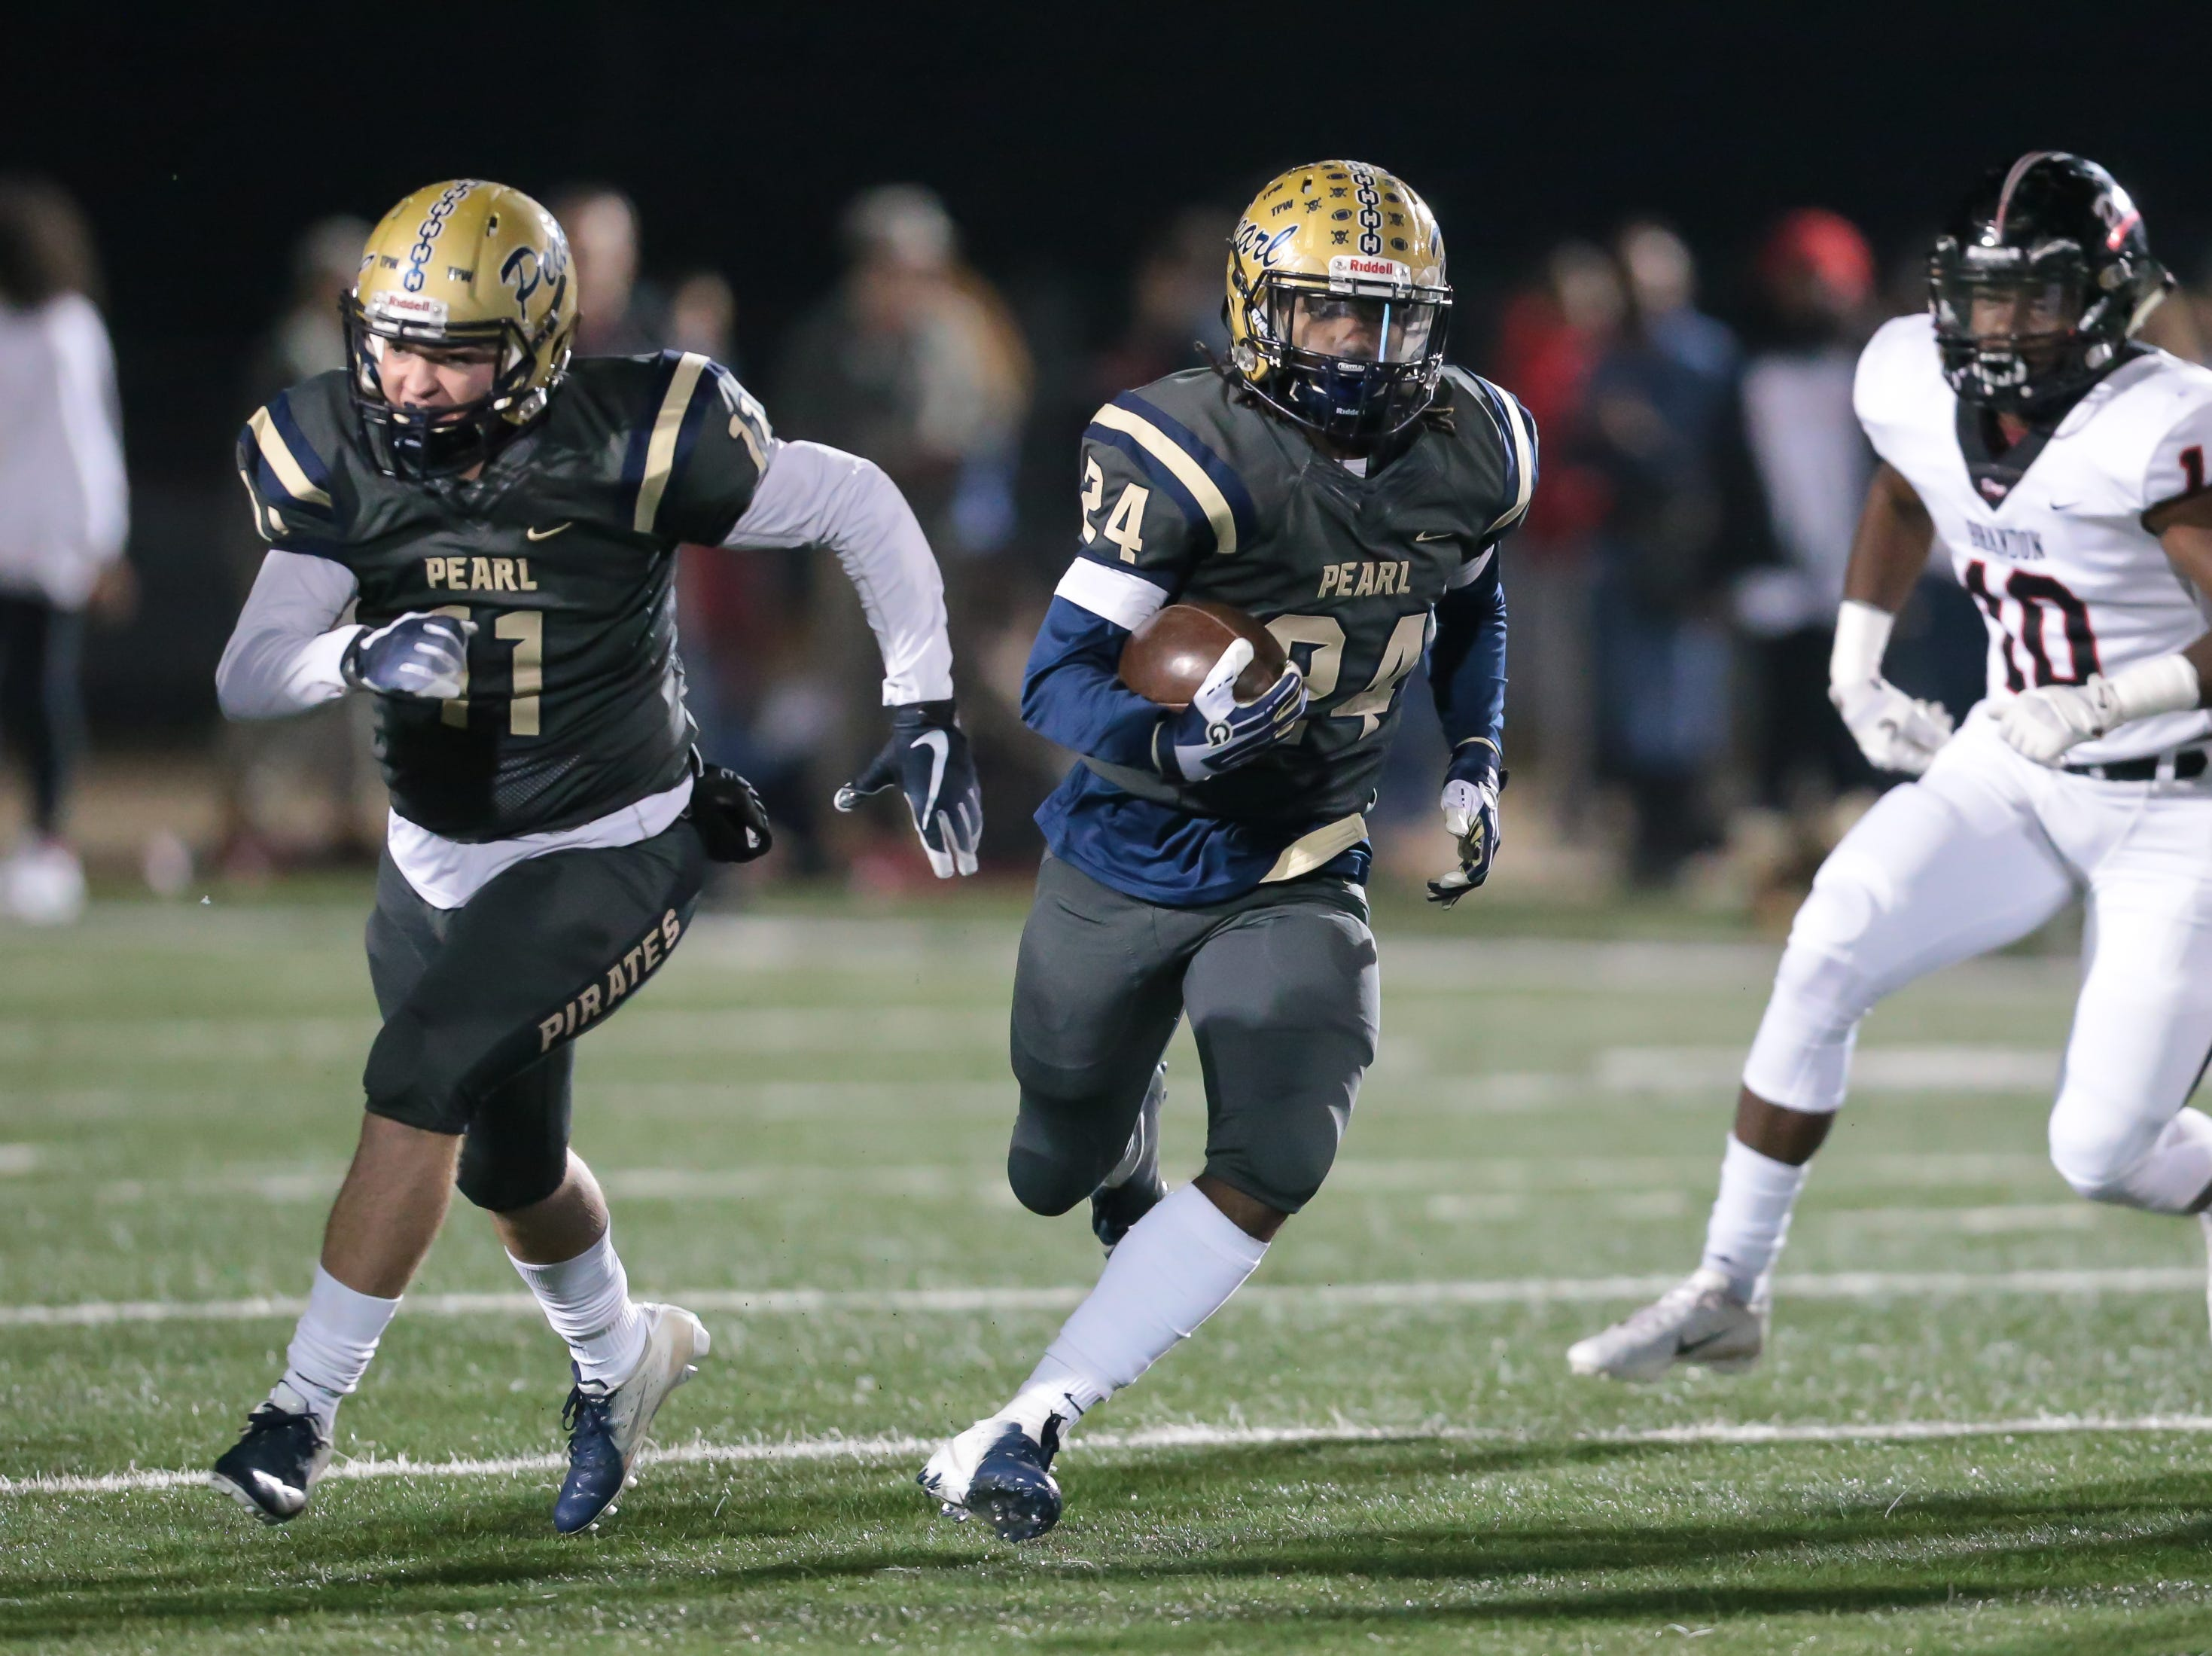 Pearl High School's Jerry Johnson (24) picks up yardage on a run in the first quarter. Pearl played Brandon High School in an MHSAA Class 6A playoff game on Friday, November 16, 2018 at Brandon. Photo by Keith Warren